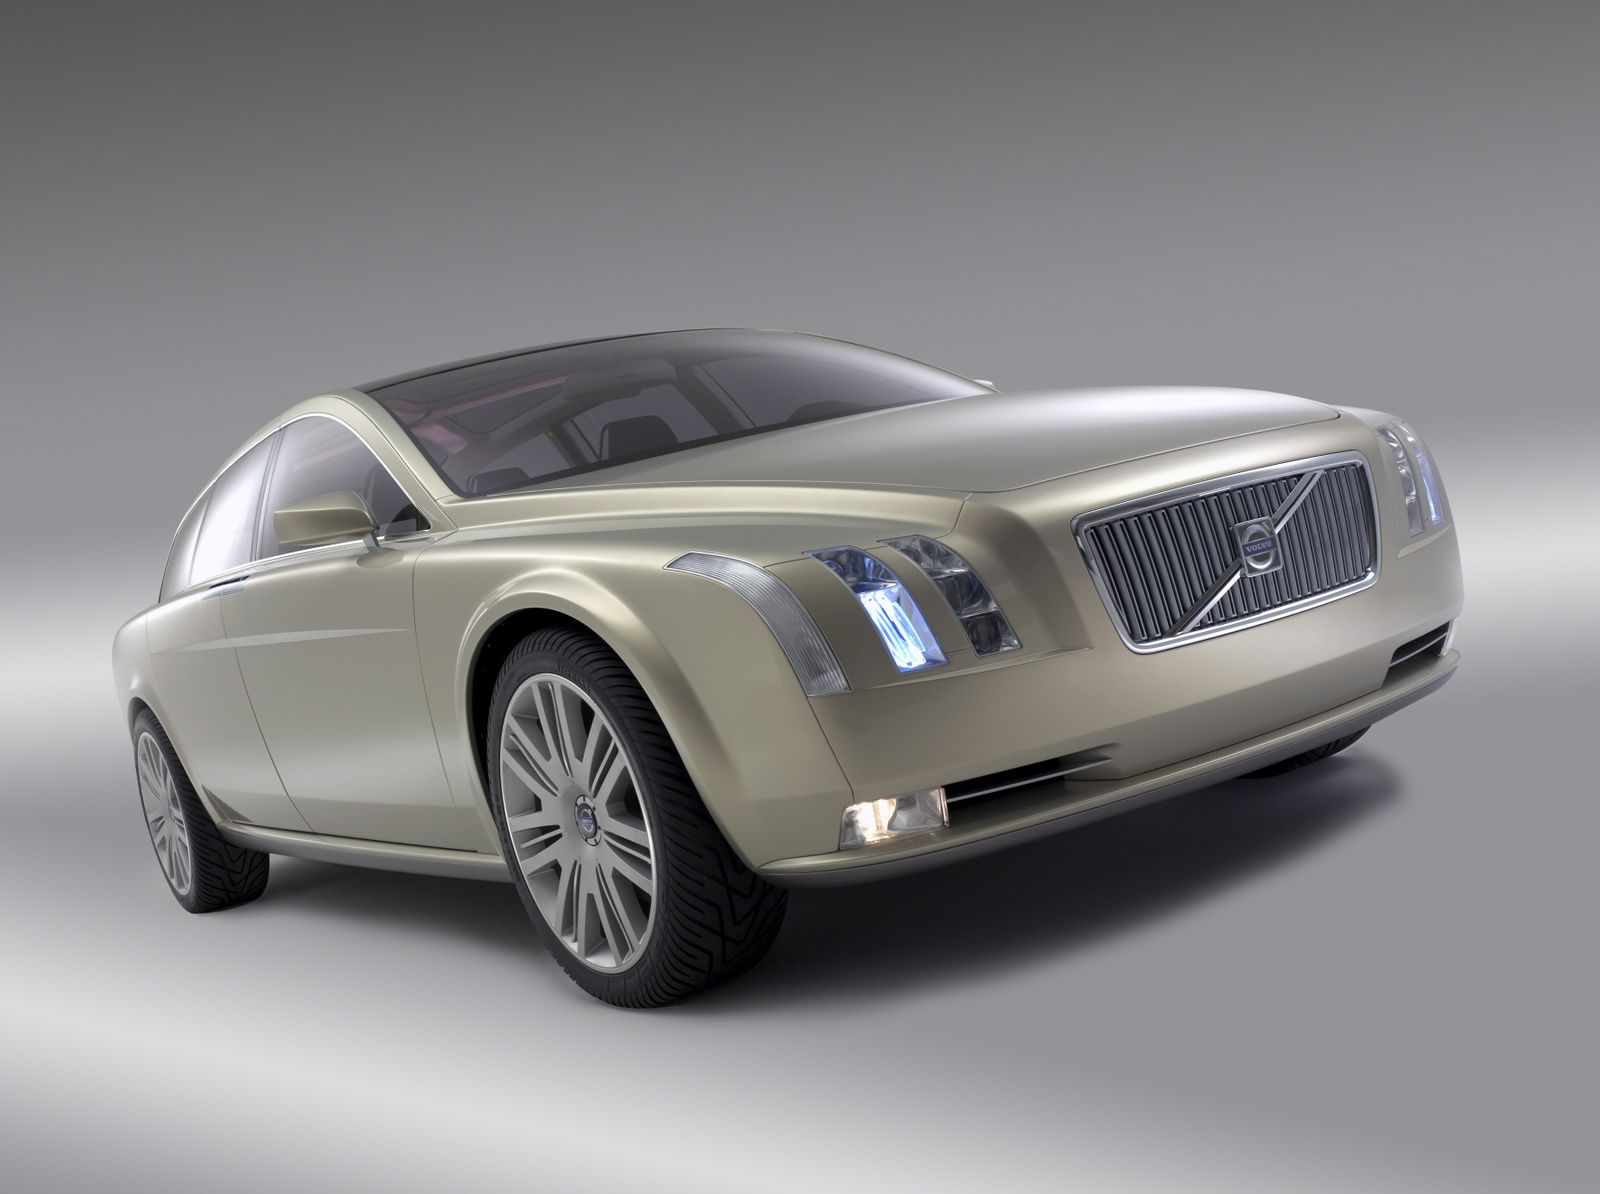 7758_Volvo_VCC_Versatility_Concept_Car_2003_The_VCC_was_designed_to_show_that